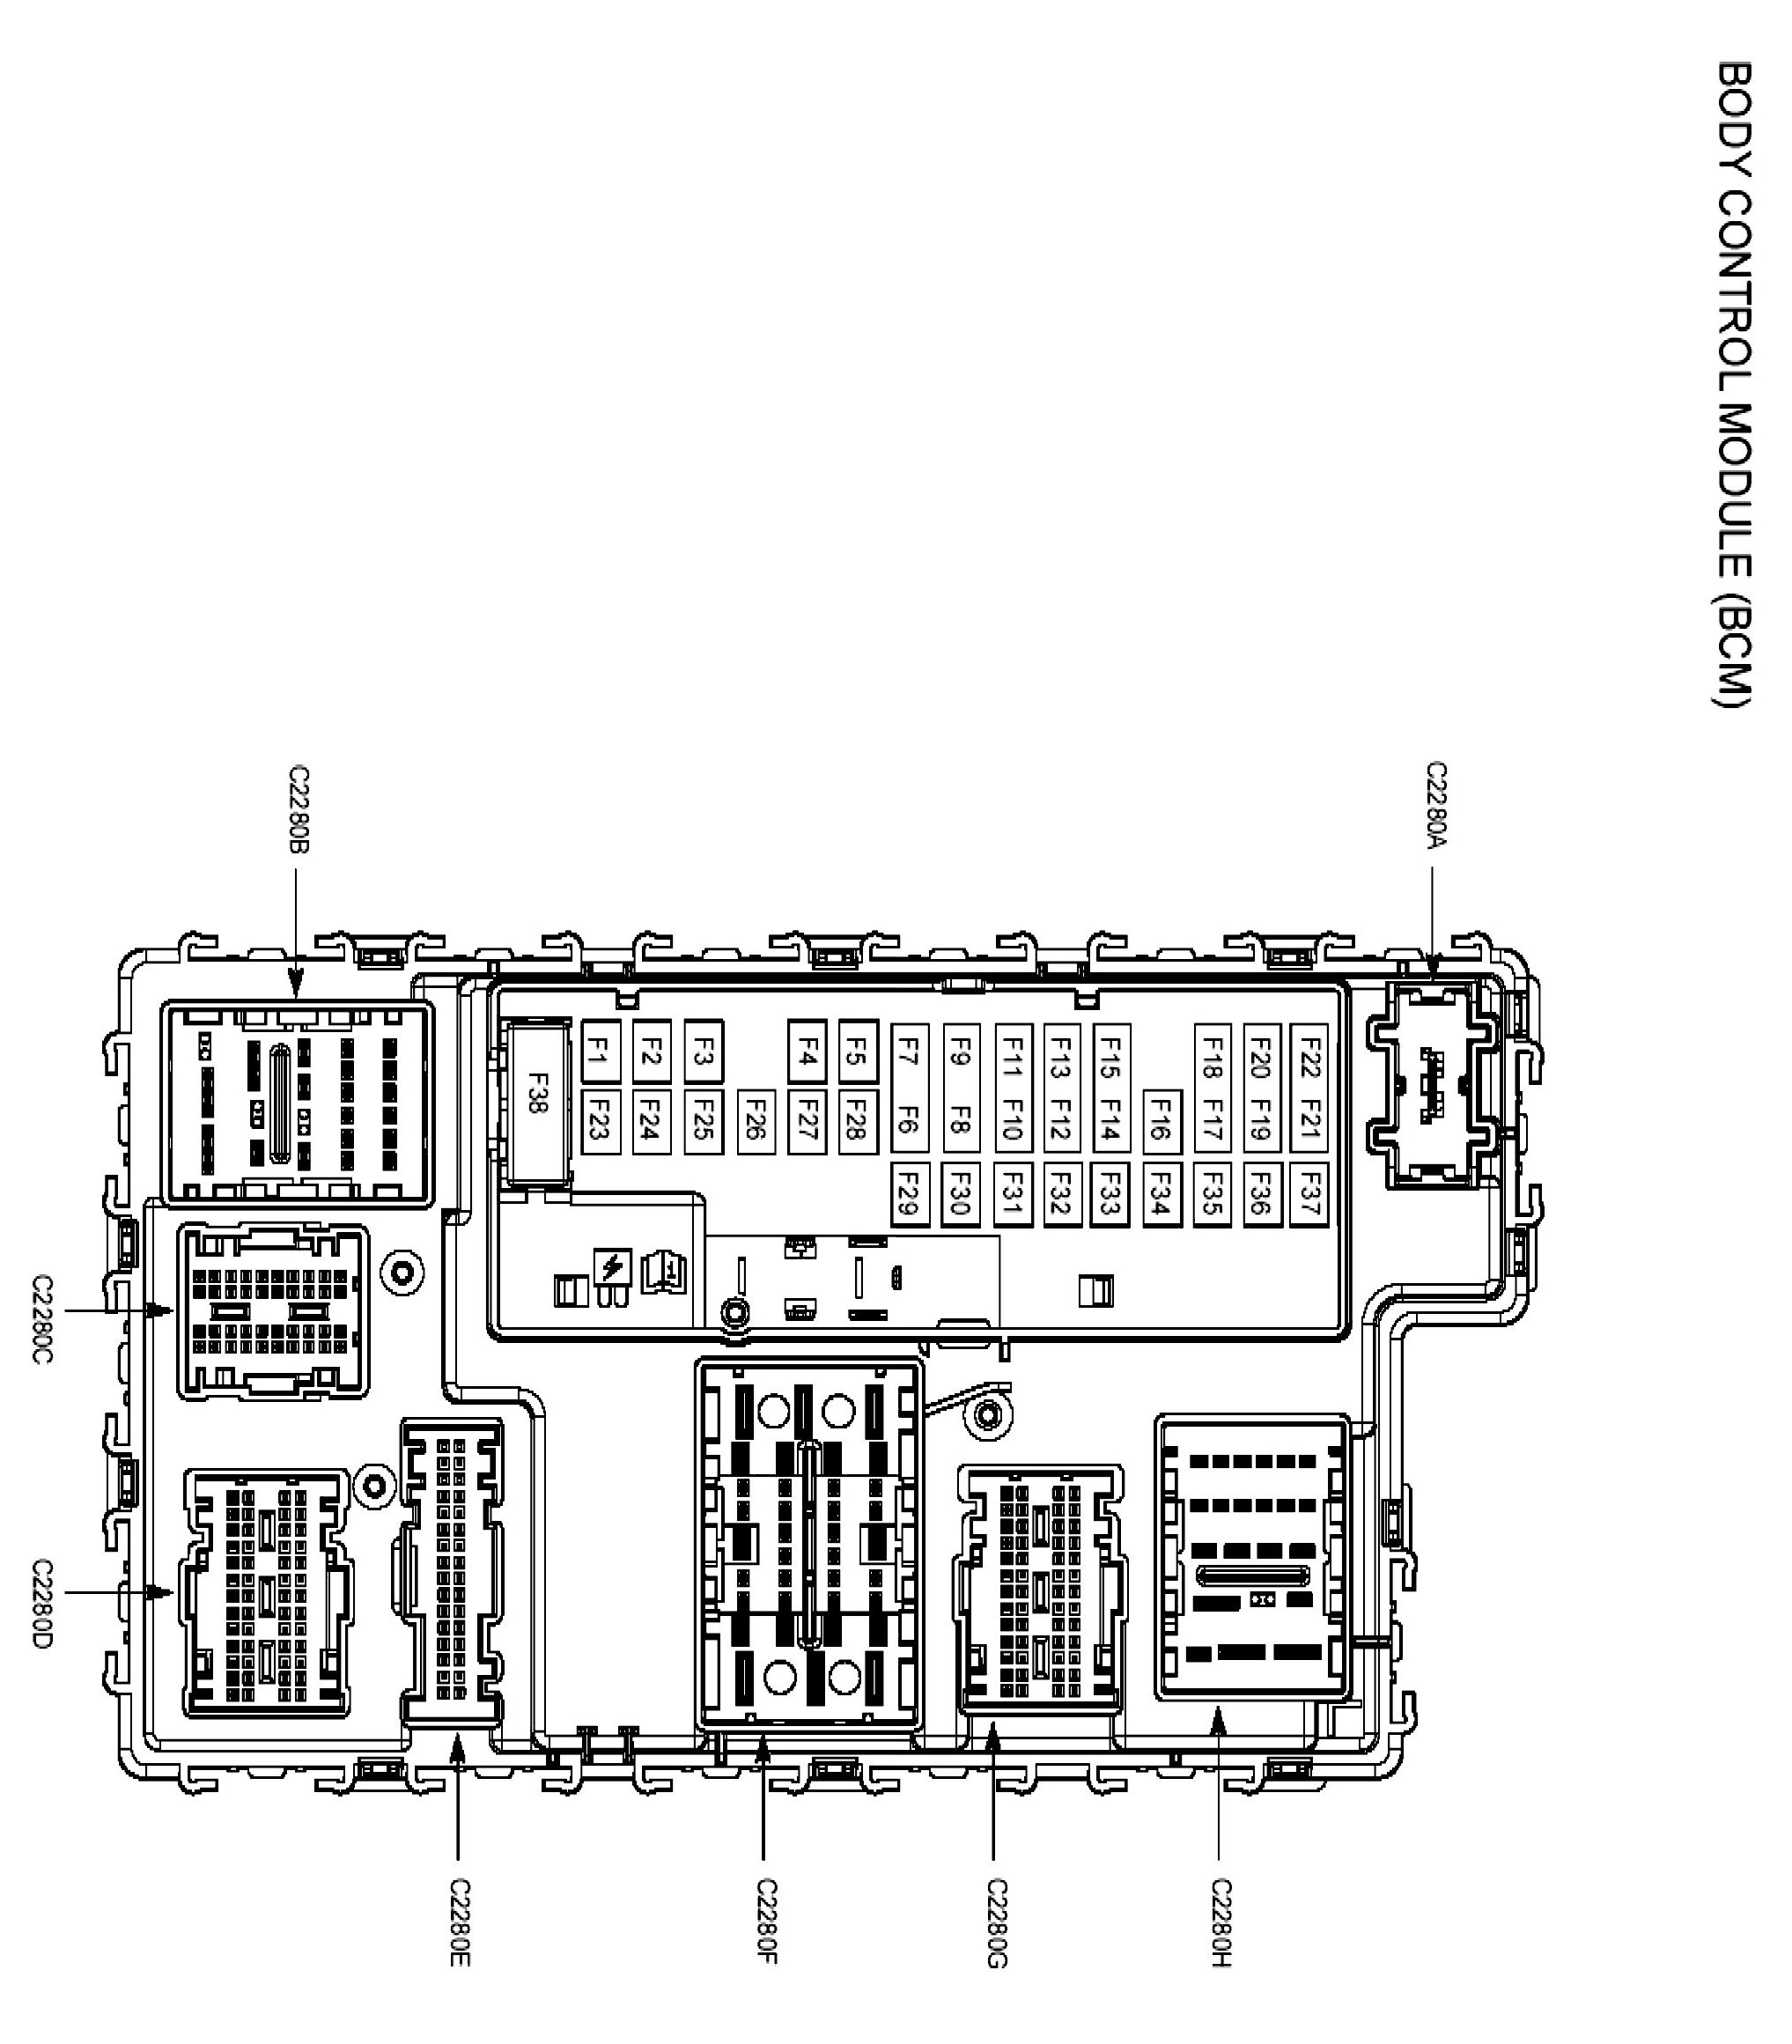 I'm looking for Ford Fusion 2013 BCM/dash fuse box diagram